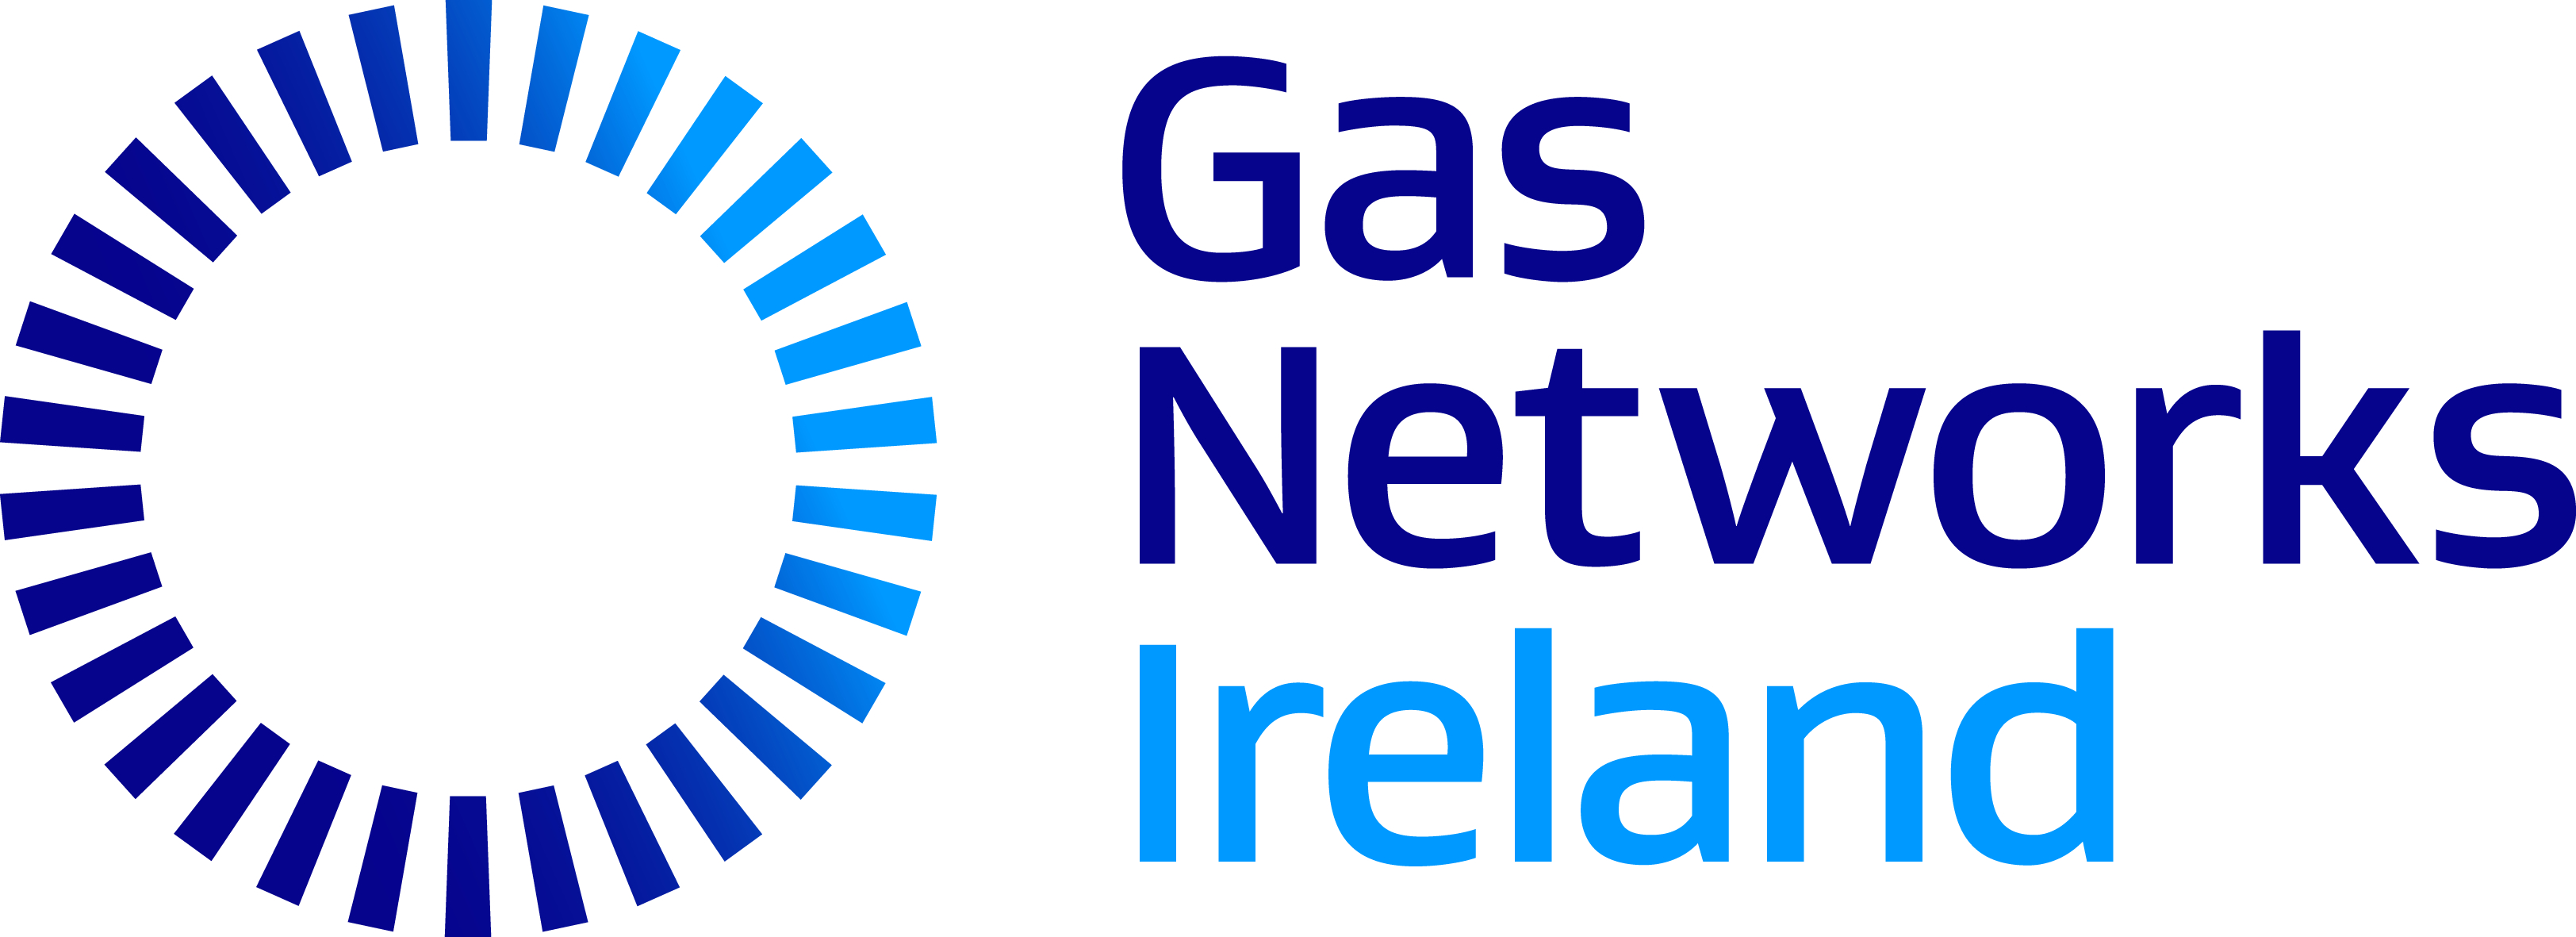 Gas Networks Ireland.jpg